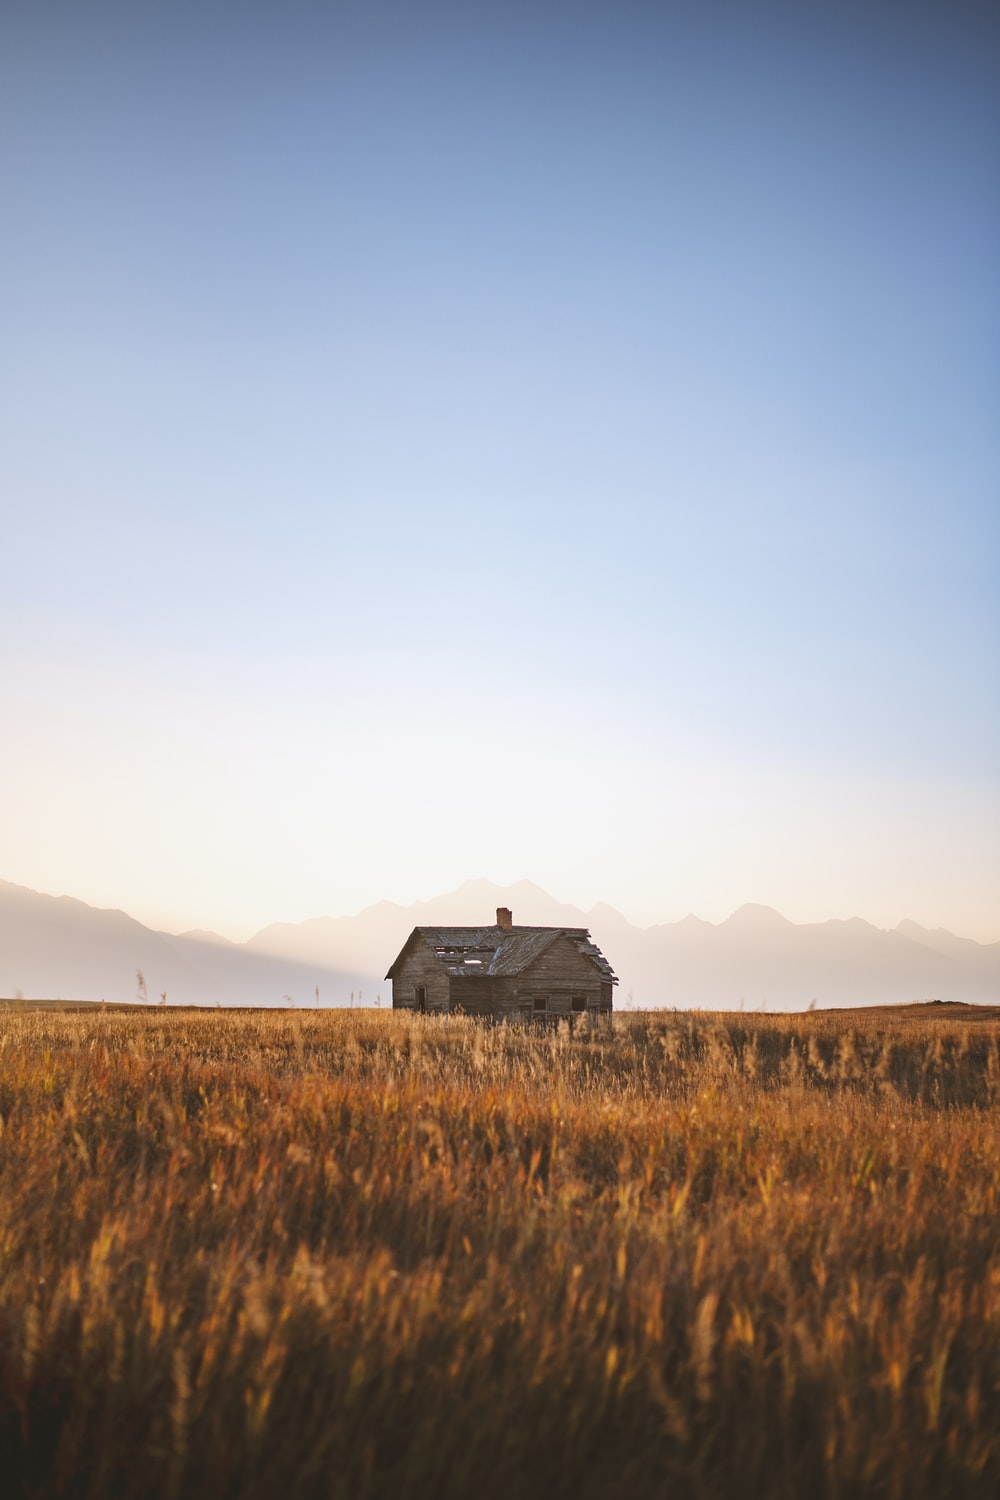 black wooden house on brown grass field during daytime